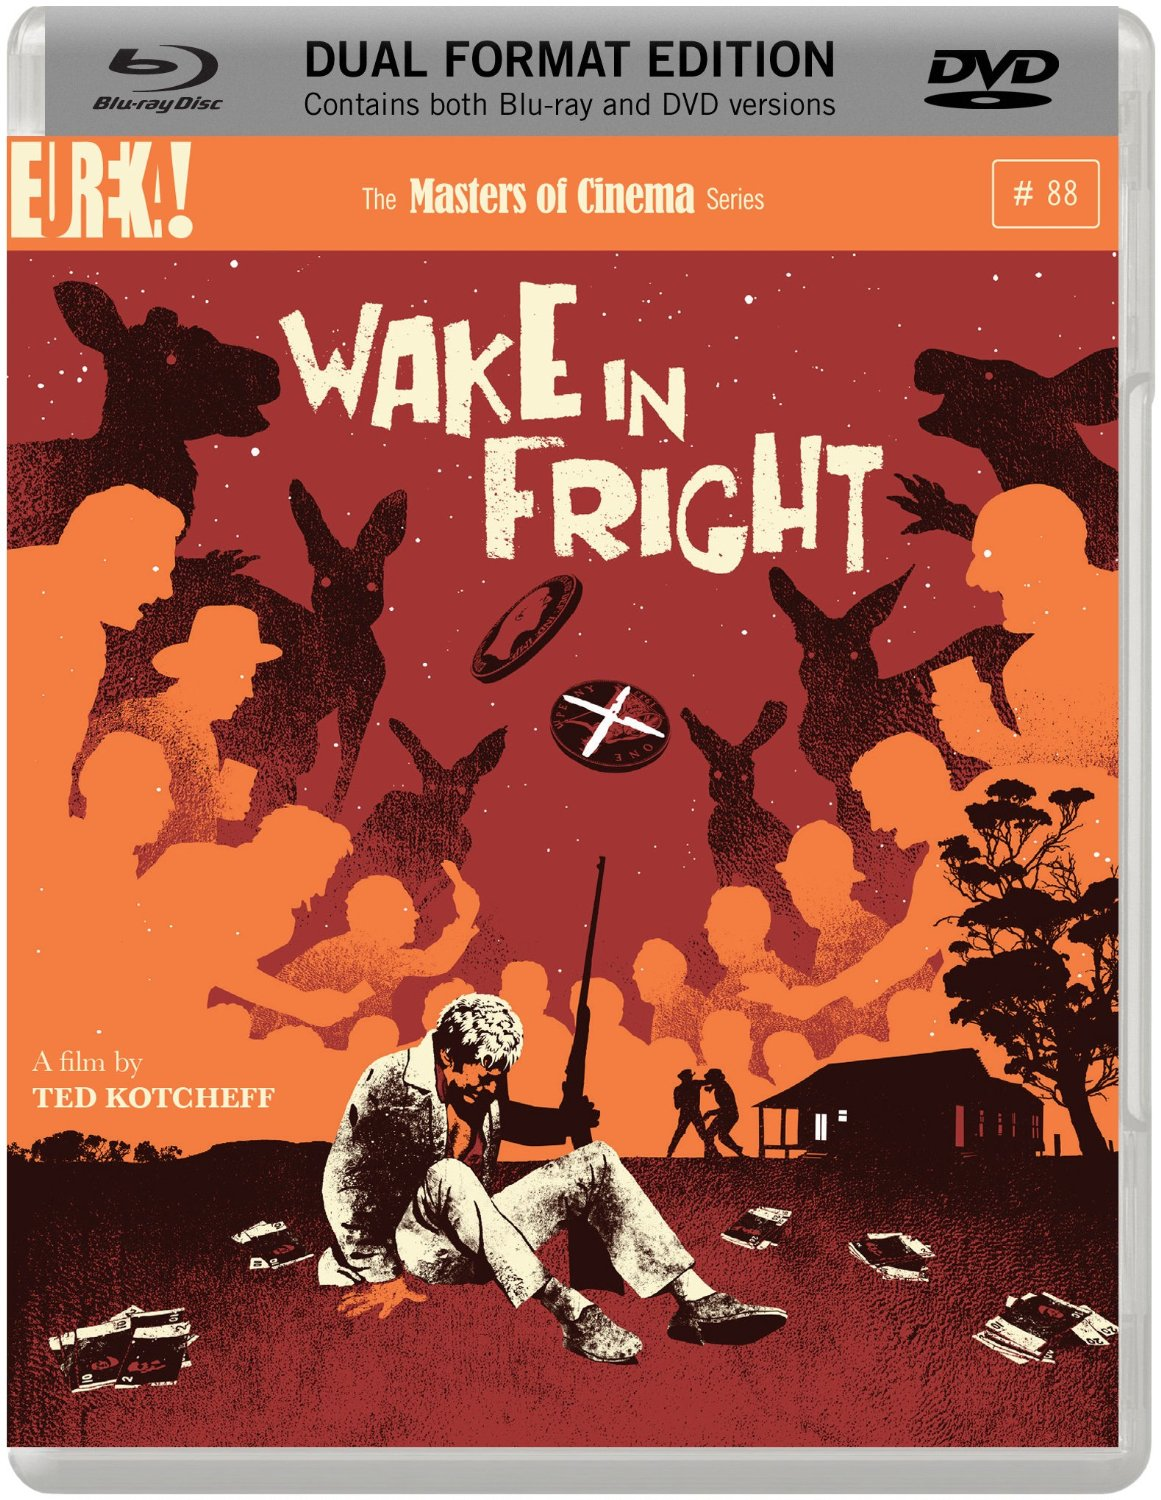 Buy Wake in Fright